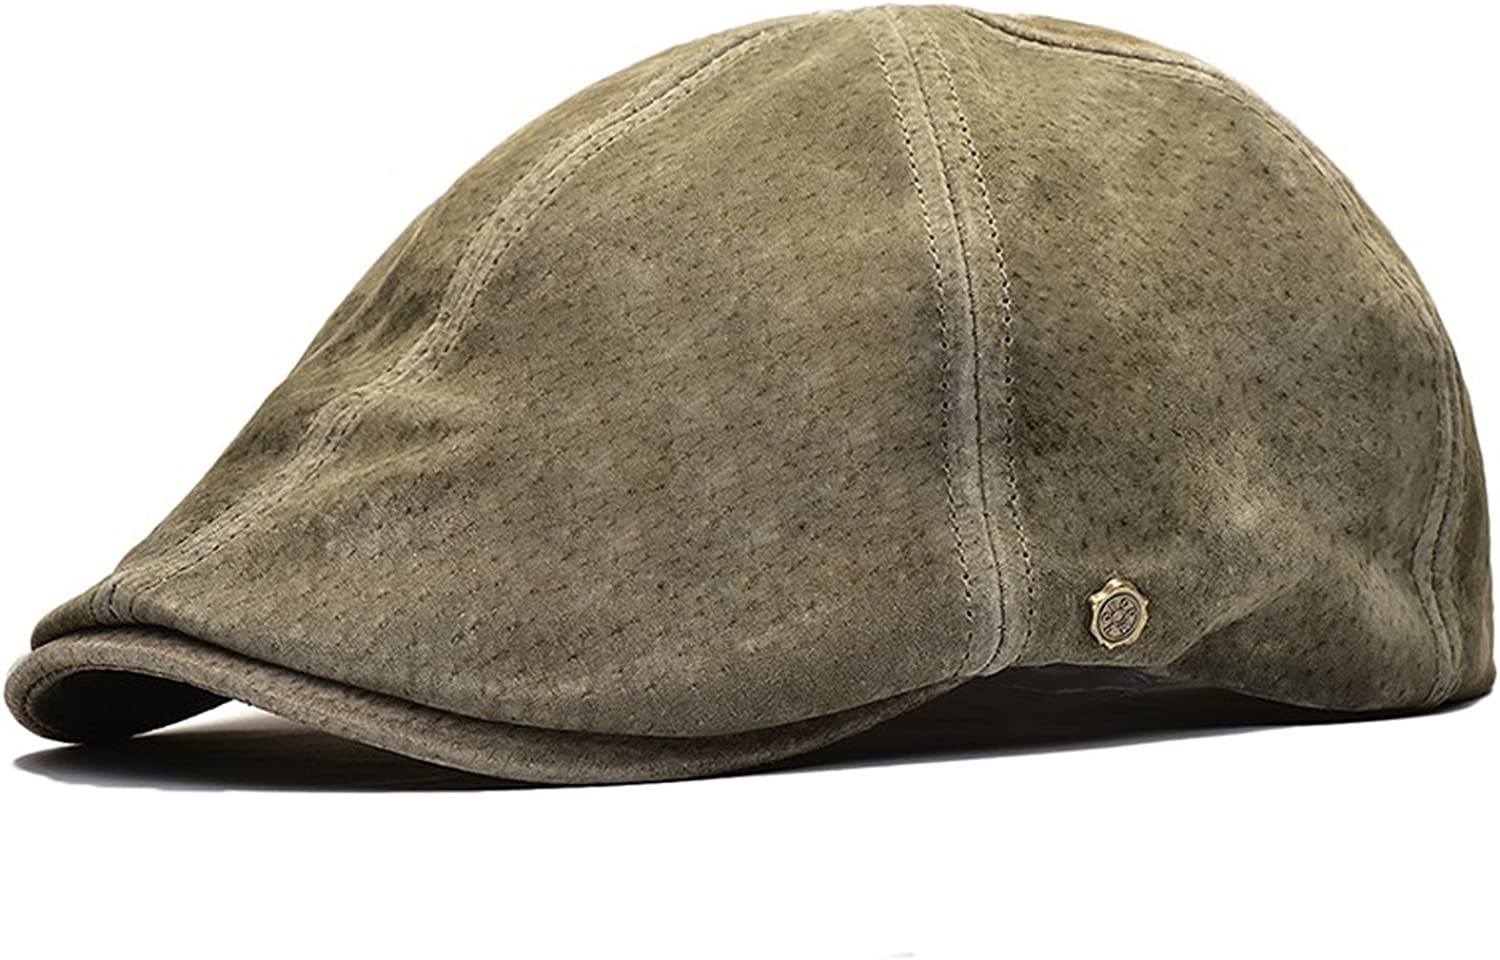 MEIZOKEN Suede Leather Newsboy Cap Men Women Frosted Nubuck Pigskin 8 Panel Gatsby Baker Hat with Lining